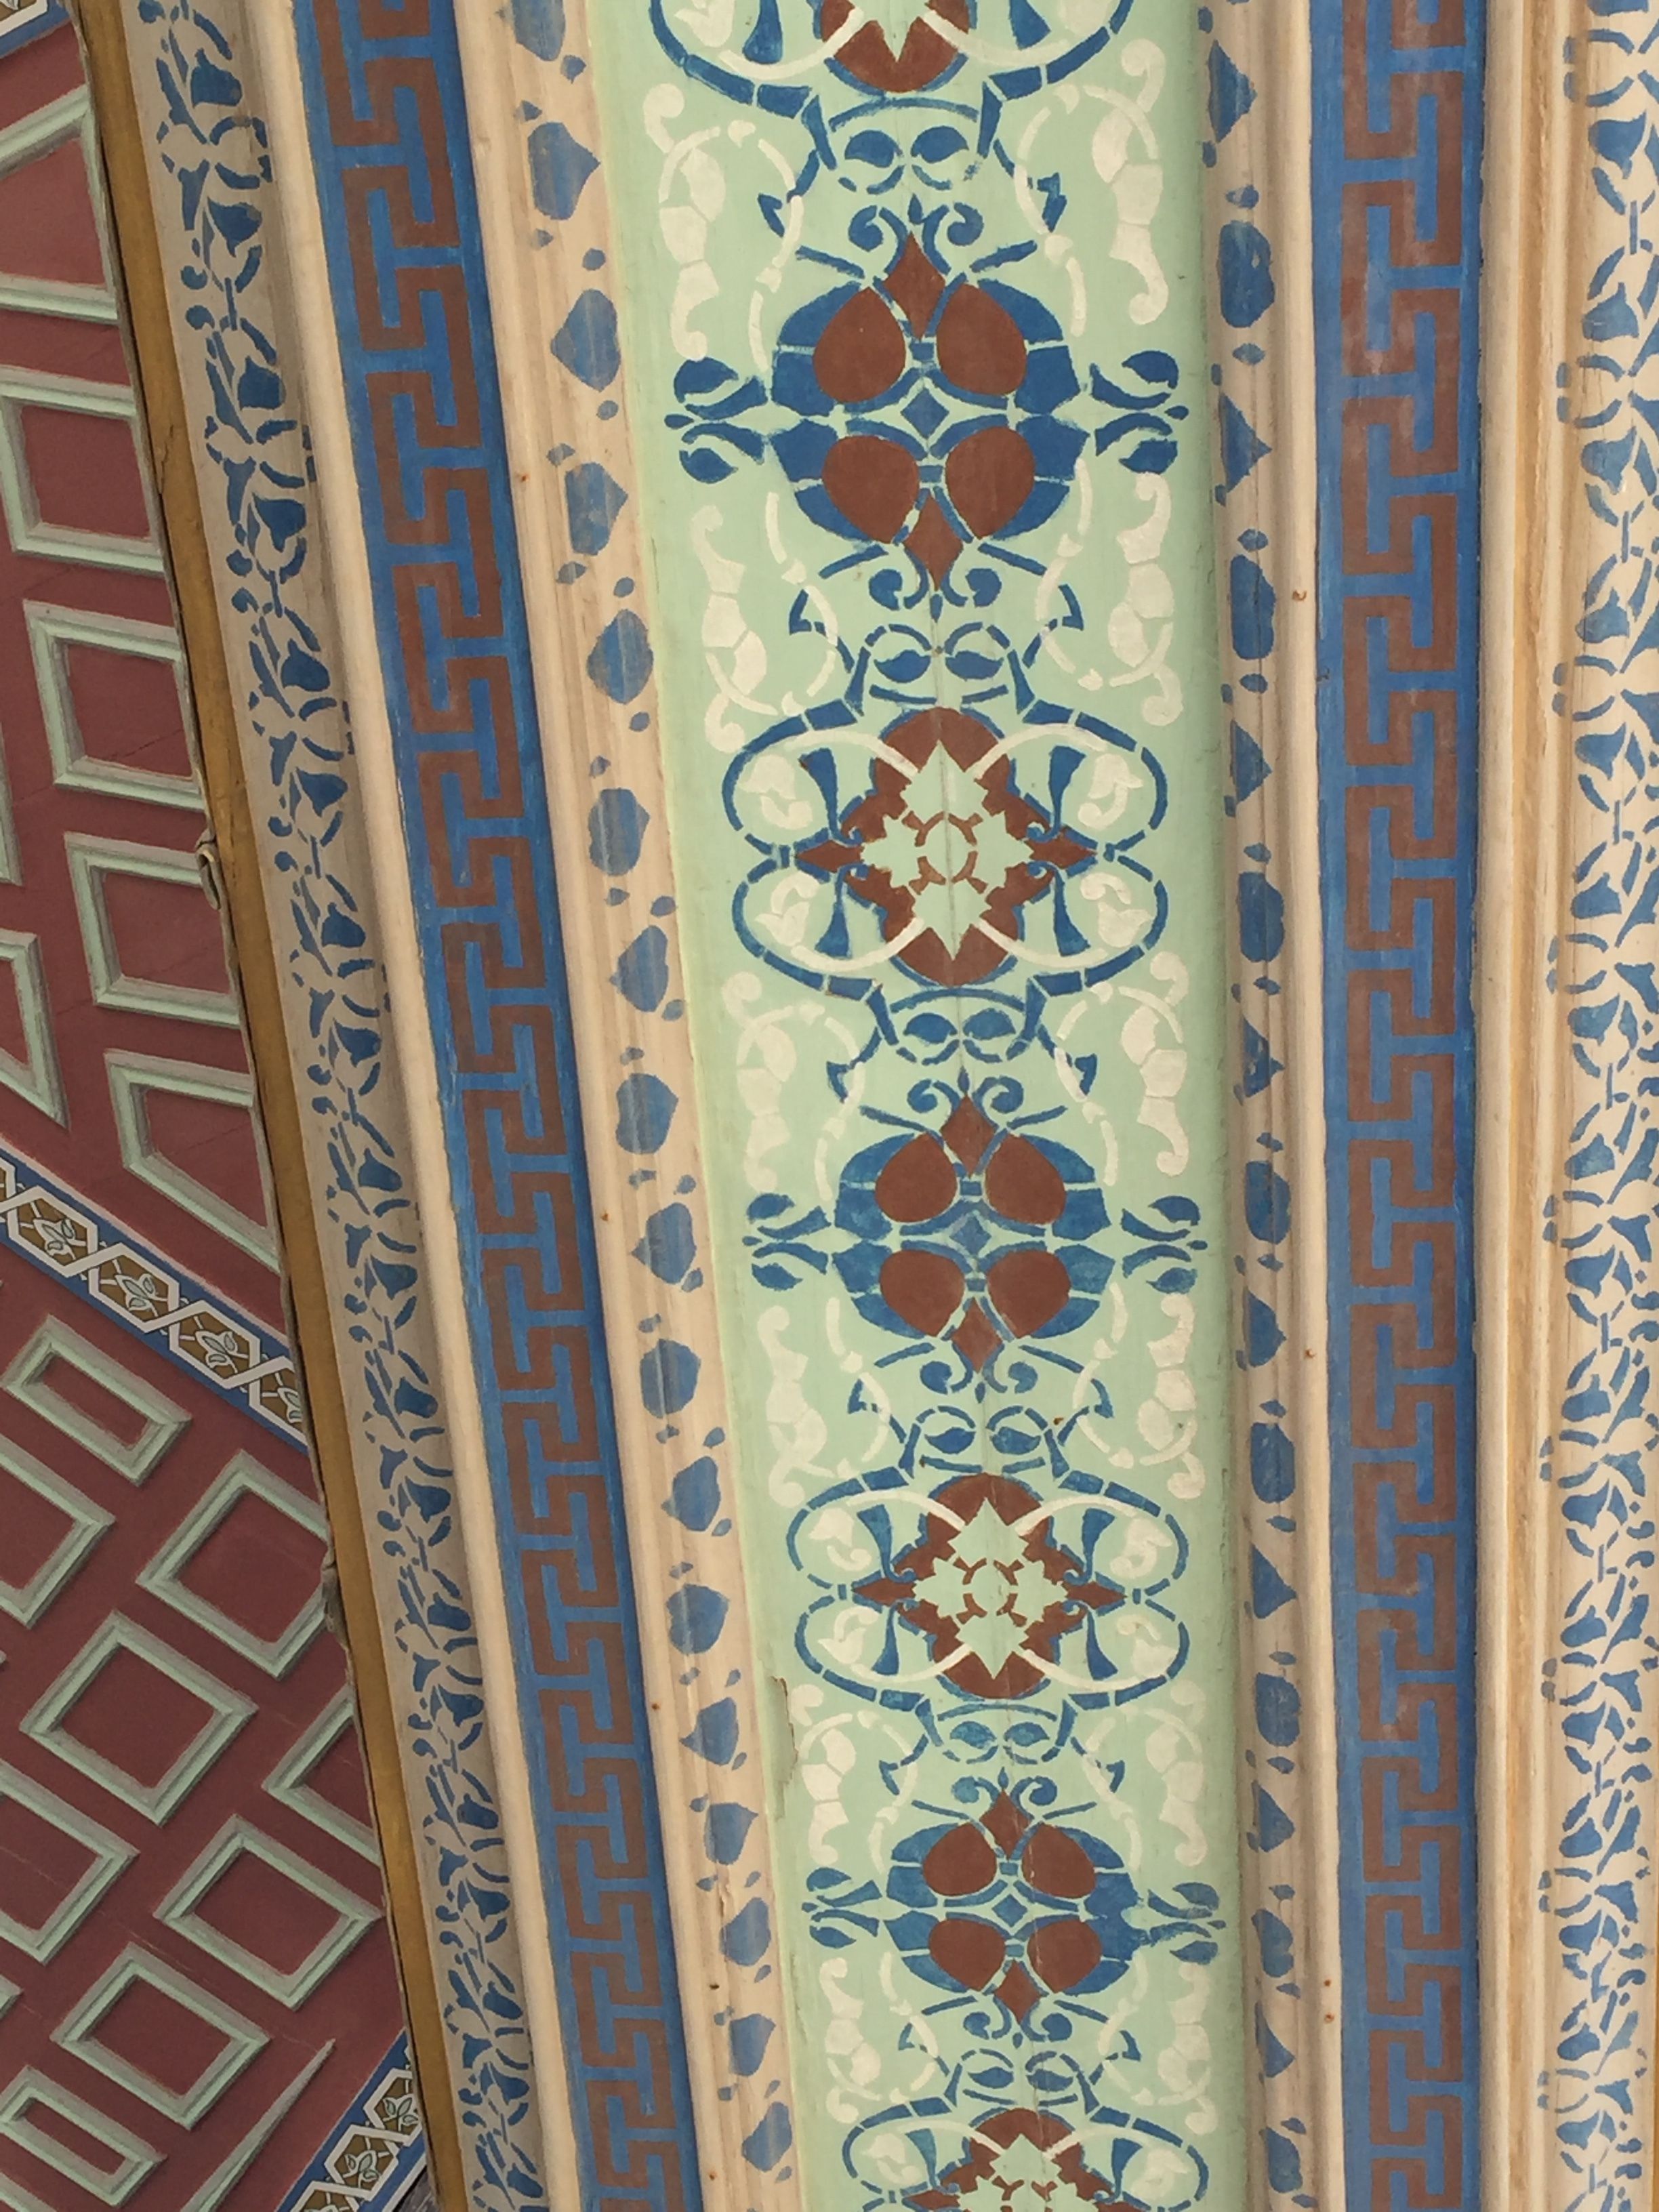 Tile Detail - Dome of the Rock